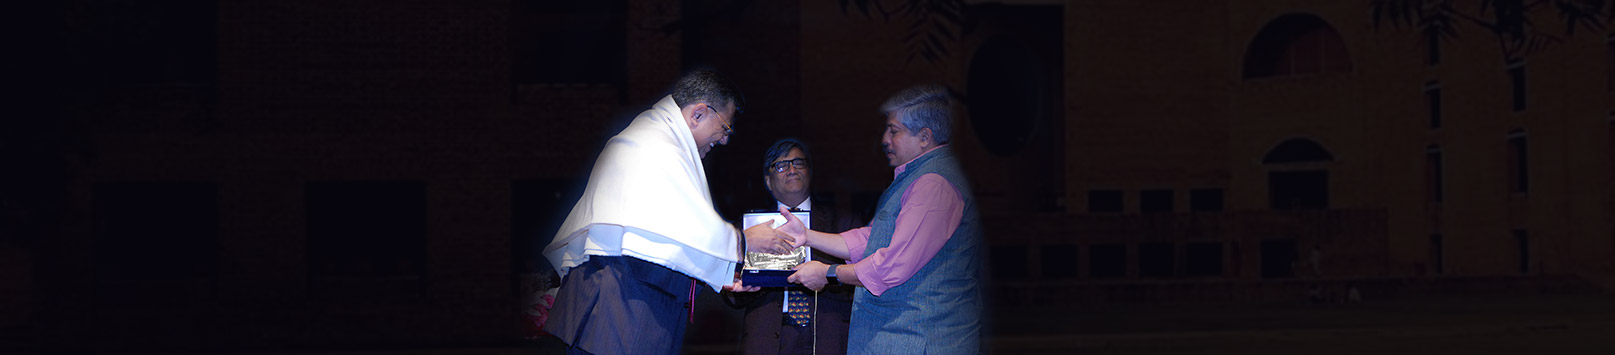 Saurabh Agrawal receiving his Distinguished Alumnus Award 2018 from Shrikrishna Kulkarni, Chairperson IIM Calcutta